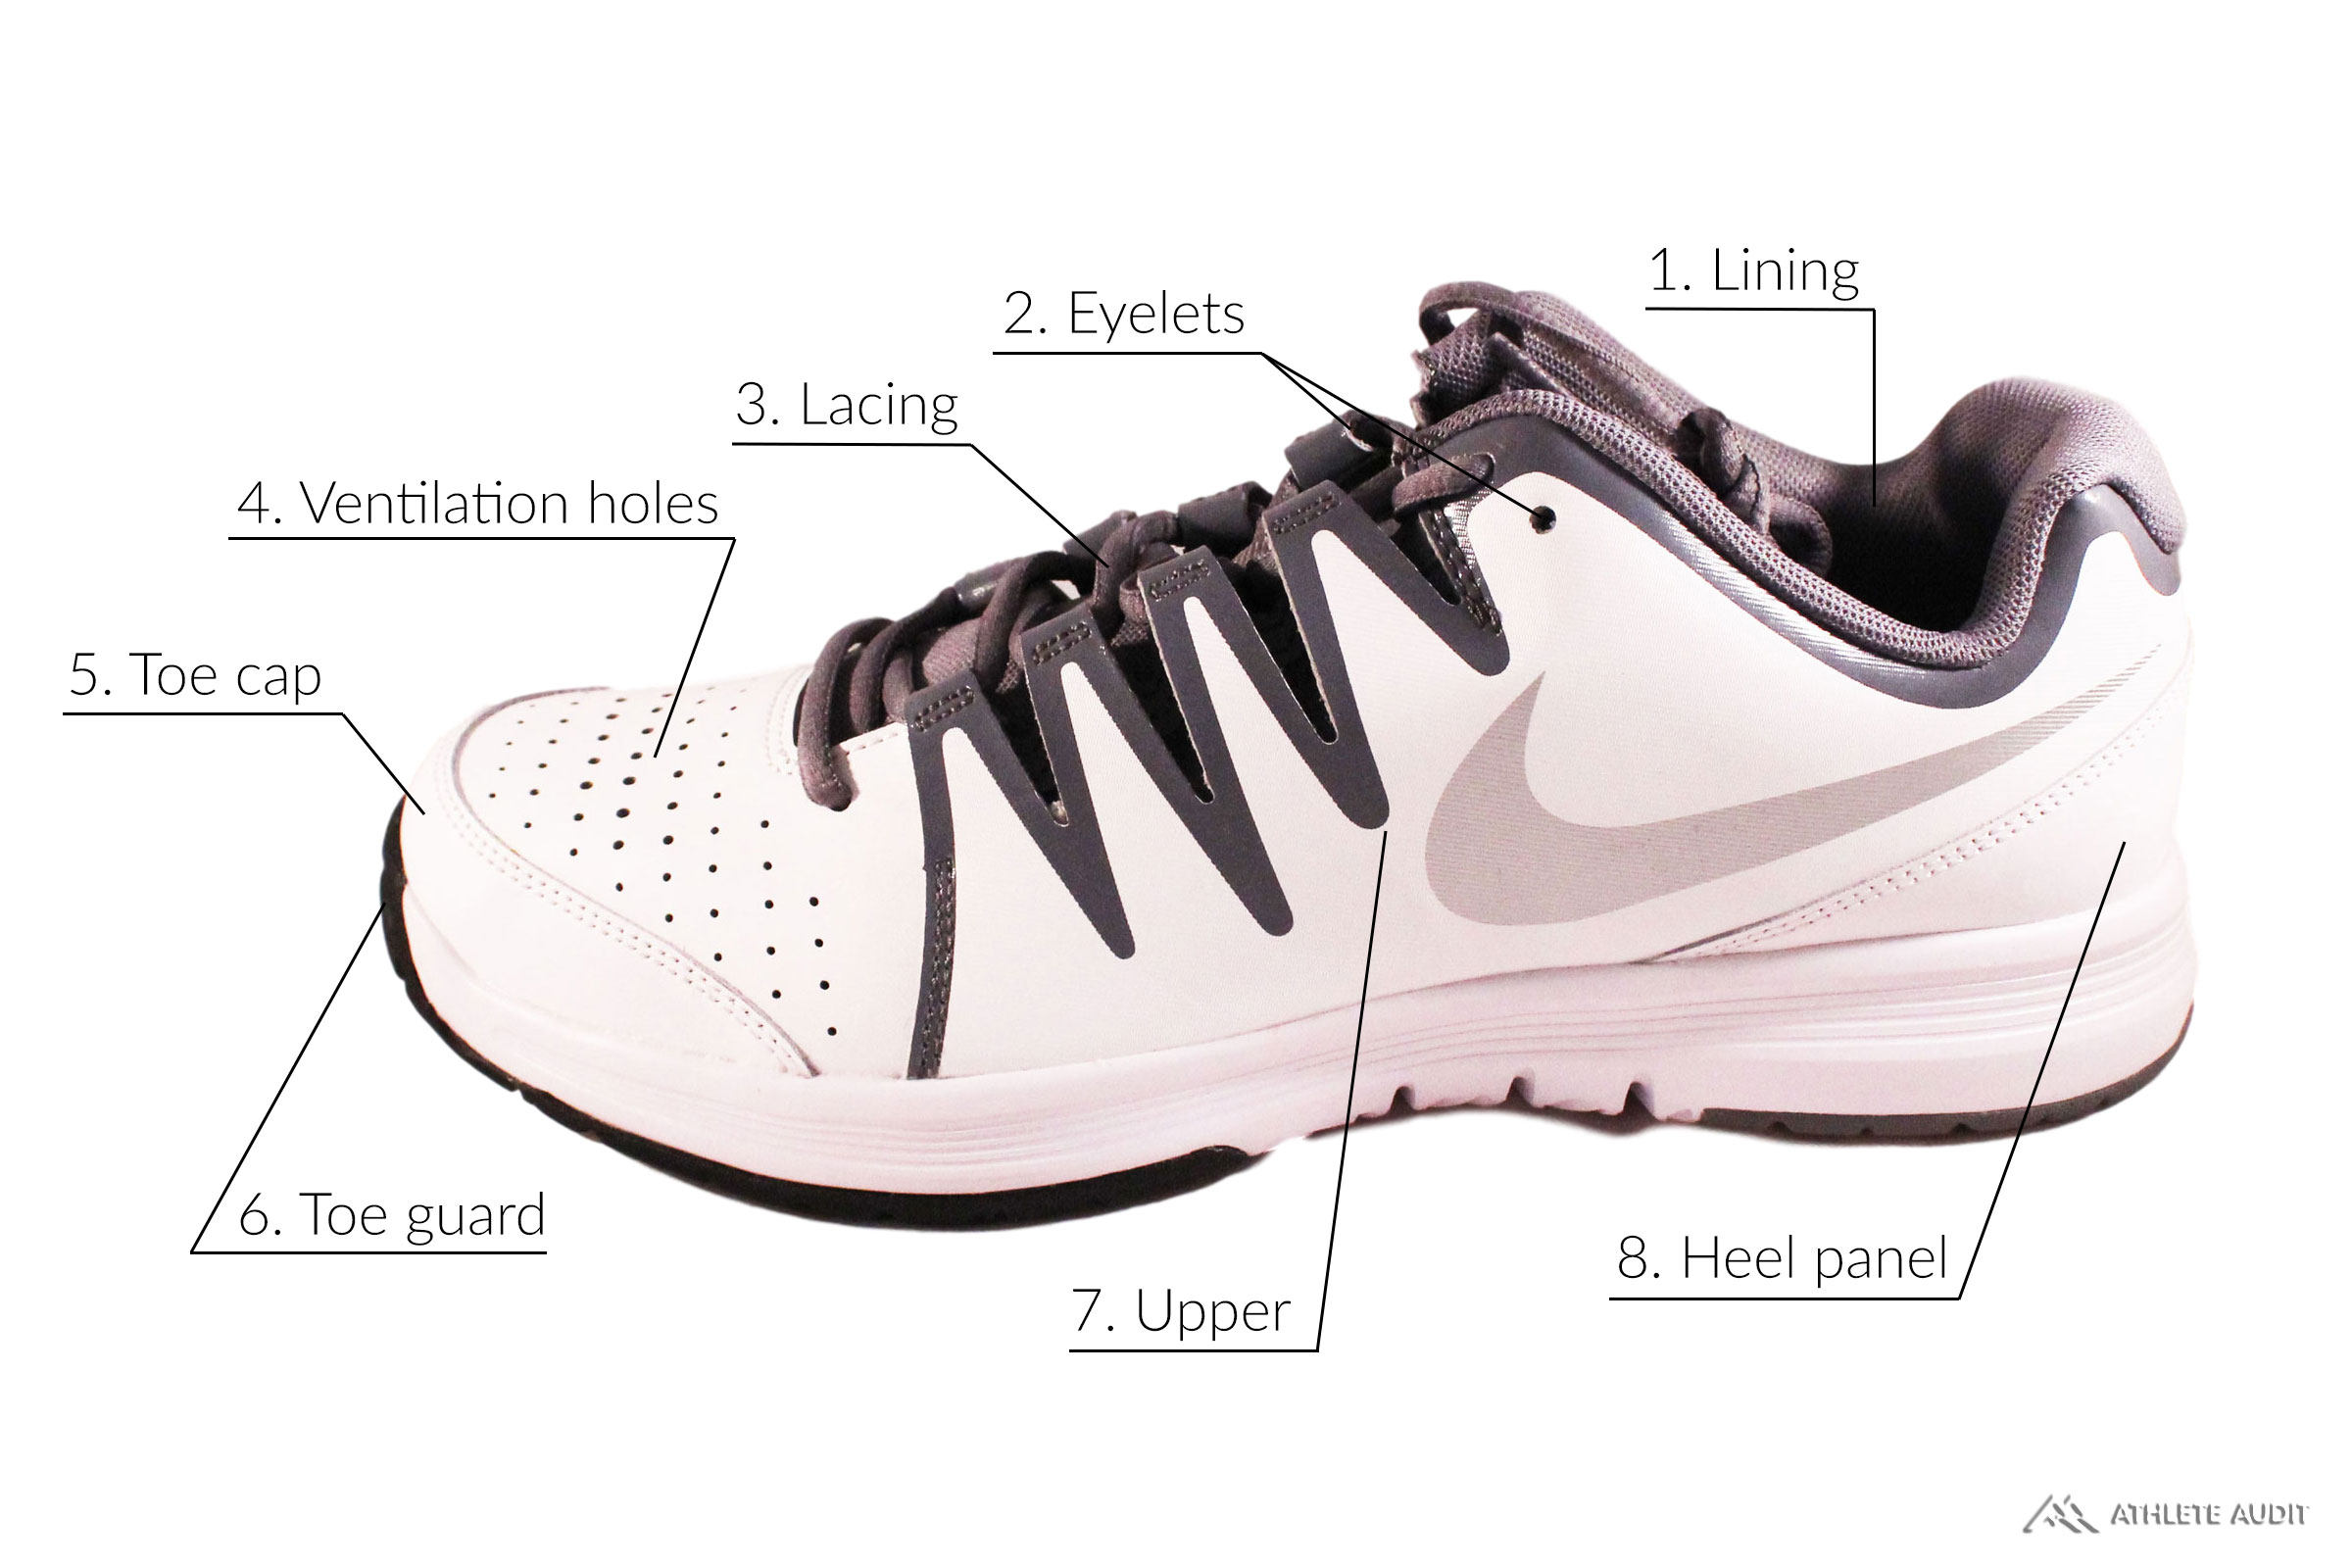 Parts of a Tennis Shoe - Outer - Anatomy of an Athletic Shoe - Athlete Audit